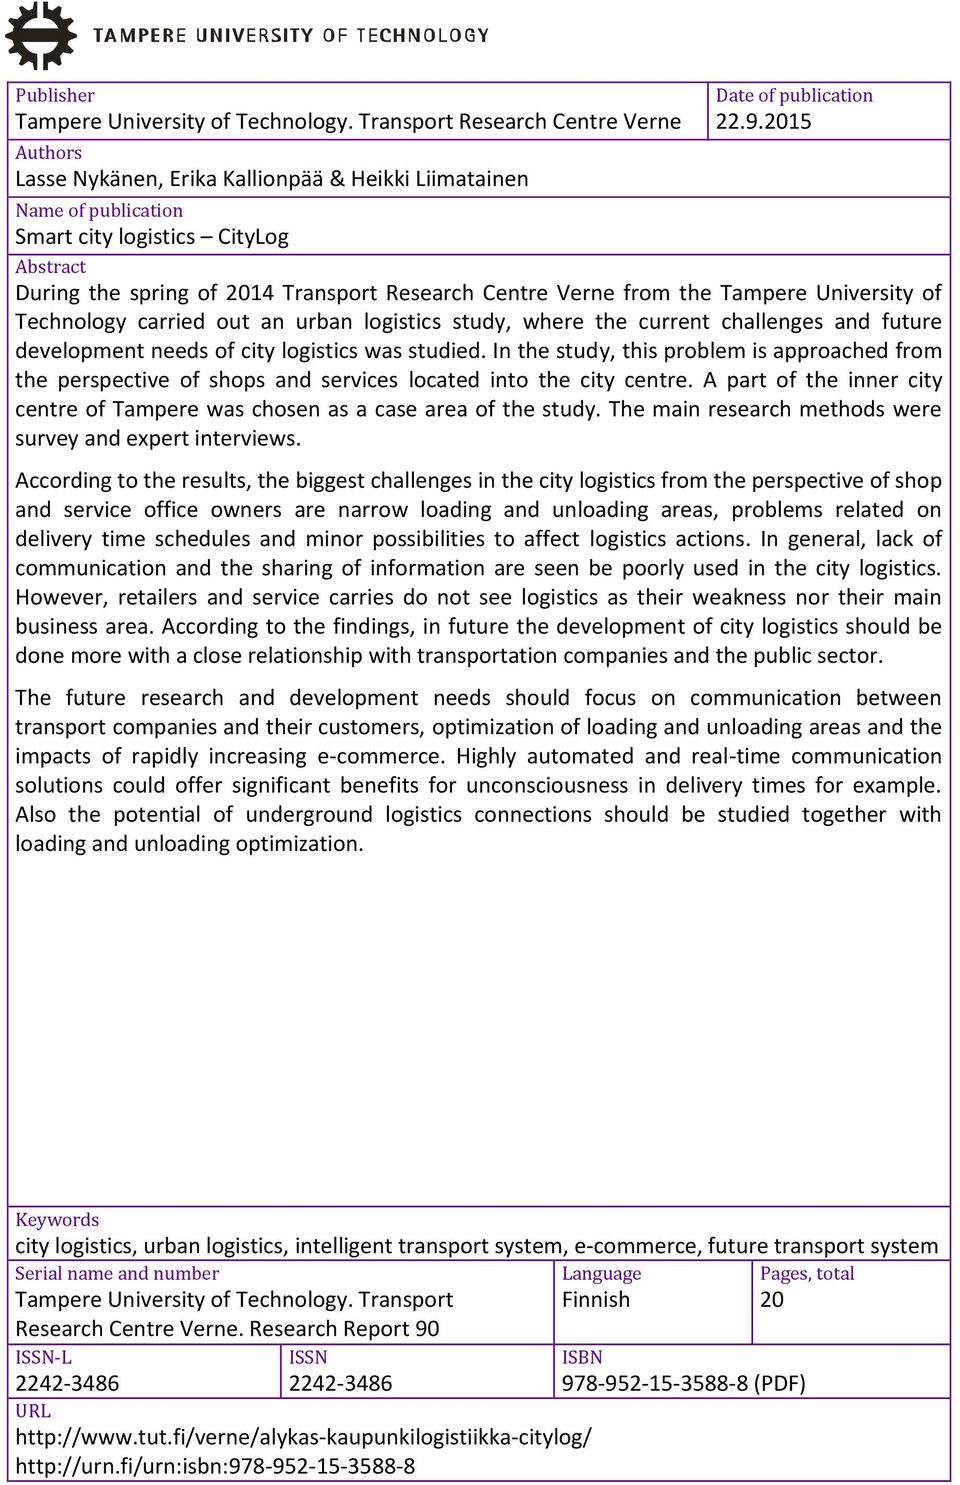 2015 Abstract During the spring of 2014 Transport Research Centre Verne from the Tampere University of Technology carried out an urban logistics study, where the current challenges and future